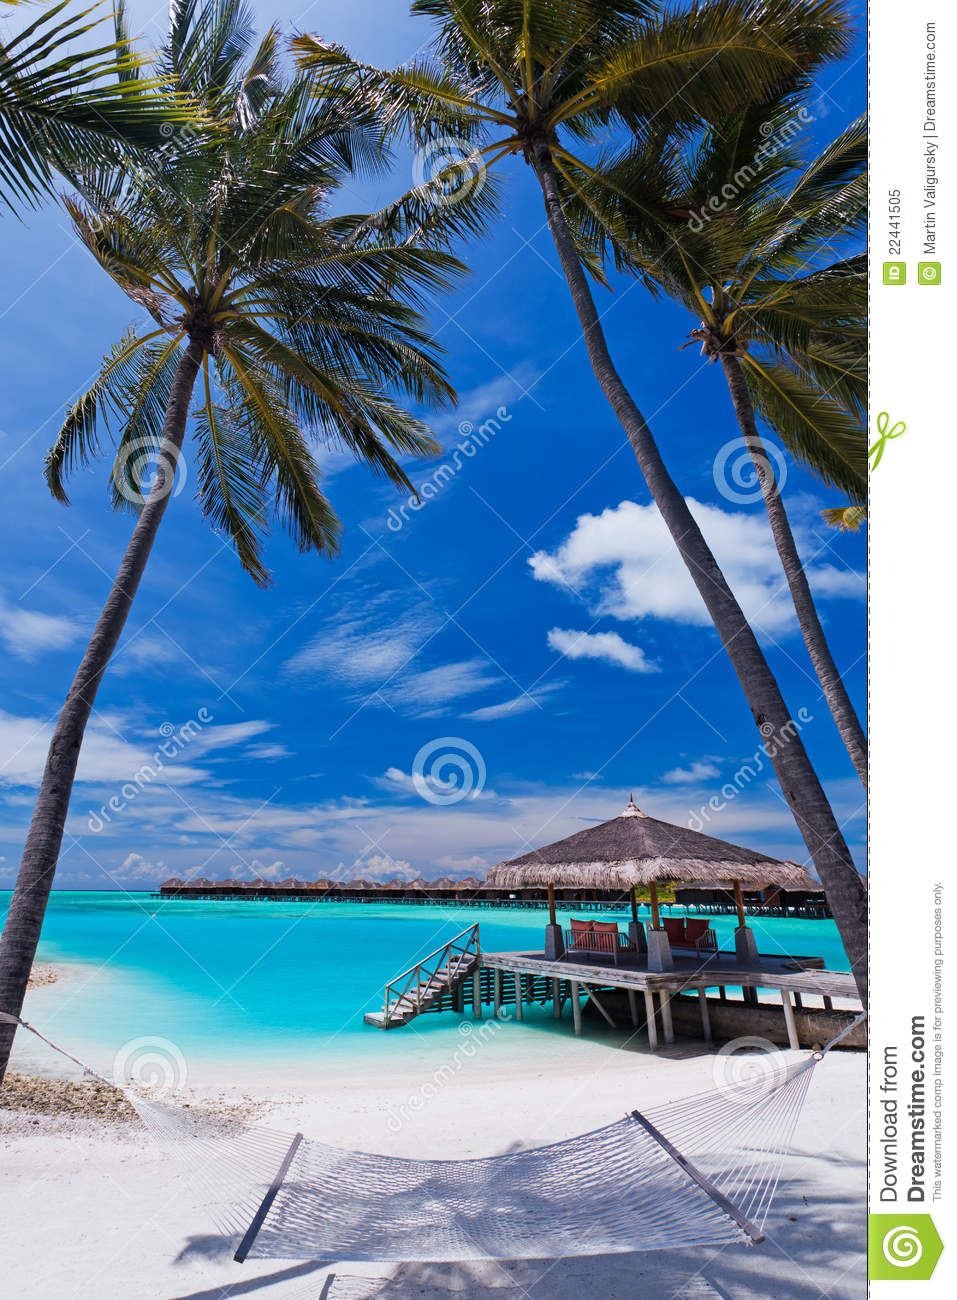 Empty Hammock Between Palm Trees On The Beach Stock Image